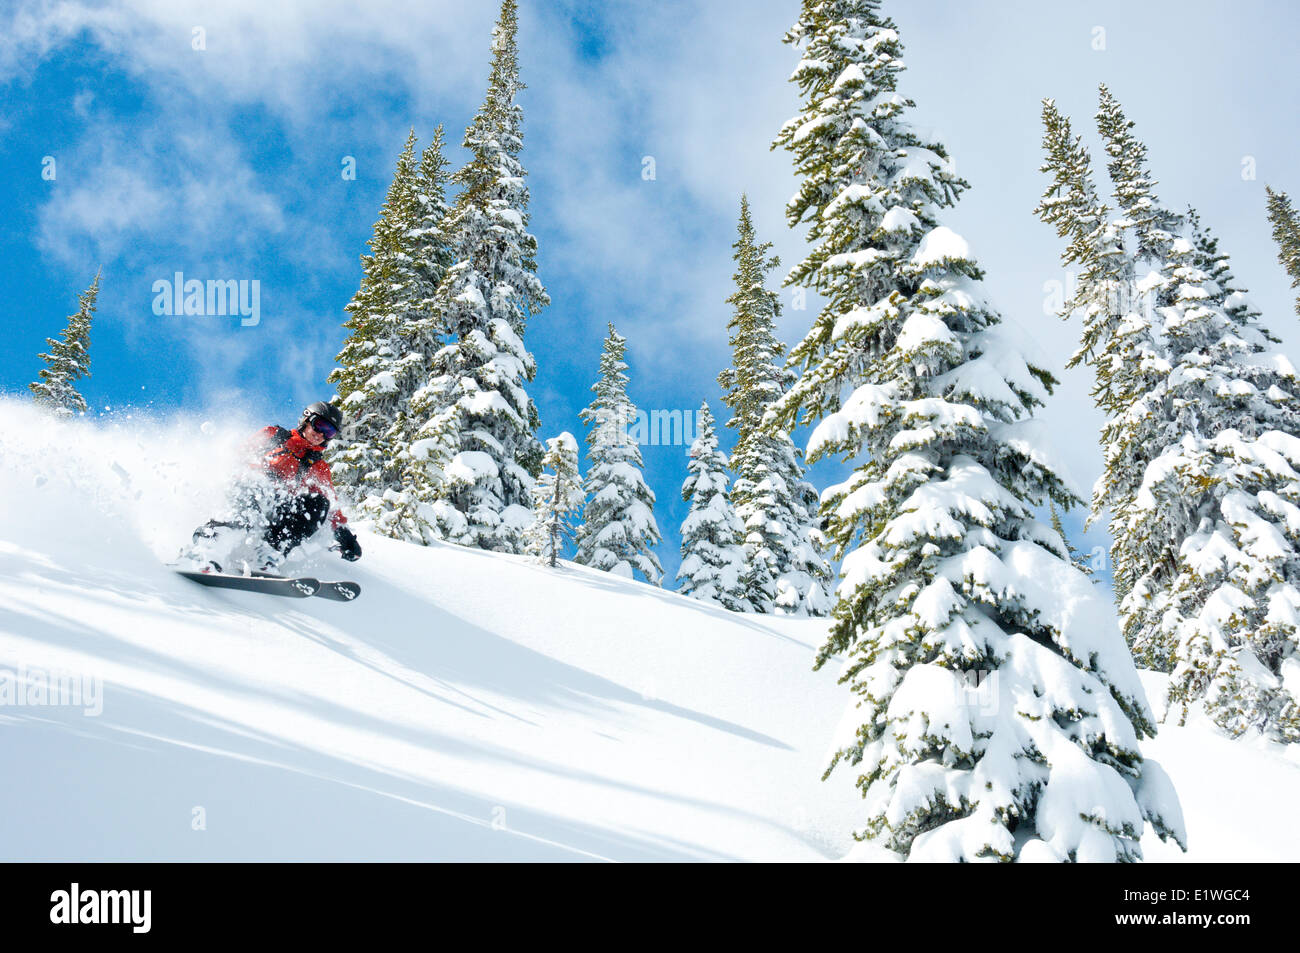 A woman skiiing in blue skies and powder at Whitewater Winter Resort, Nelson, British Columbia - Stock Image